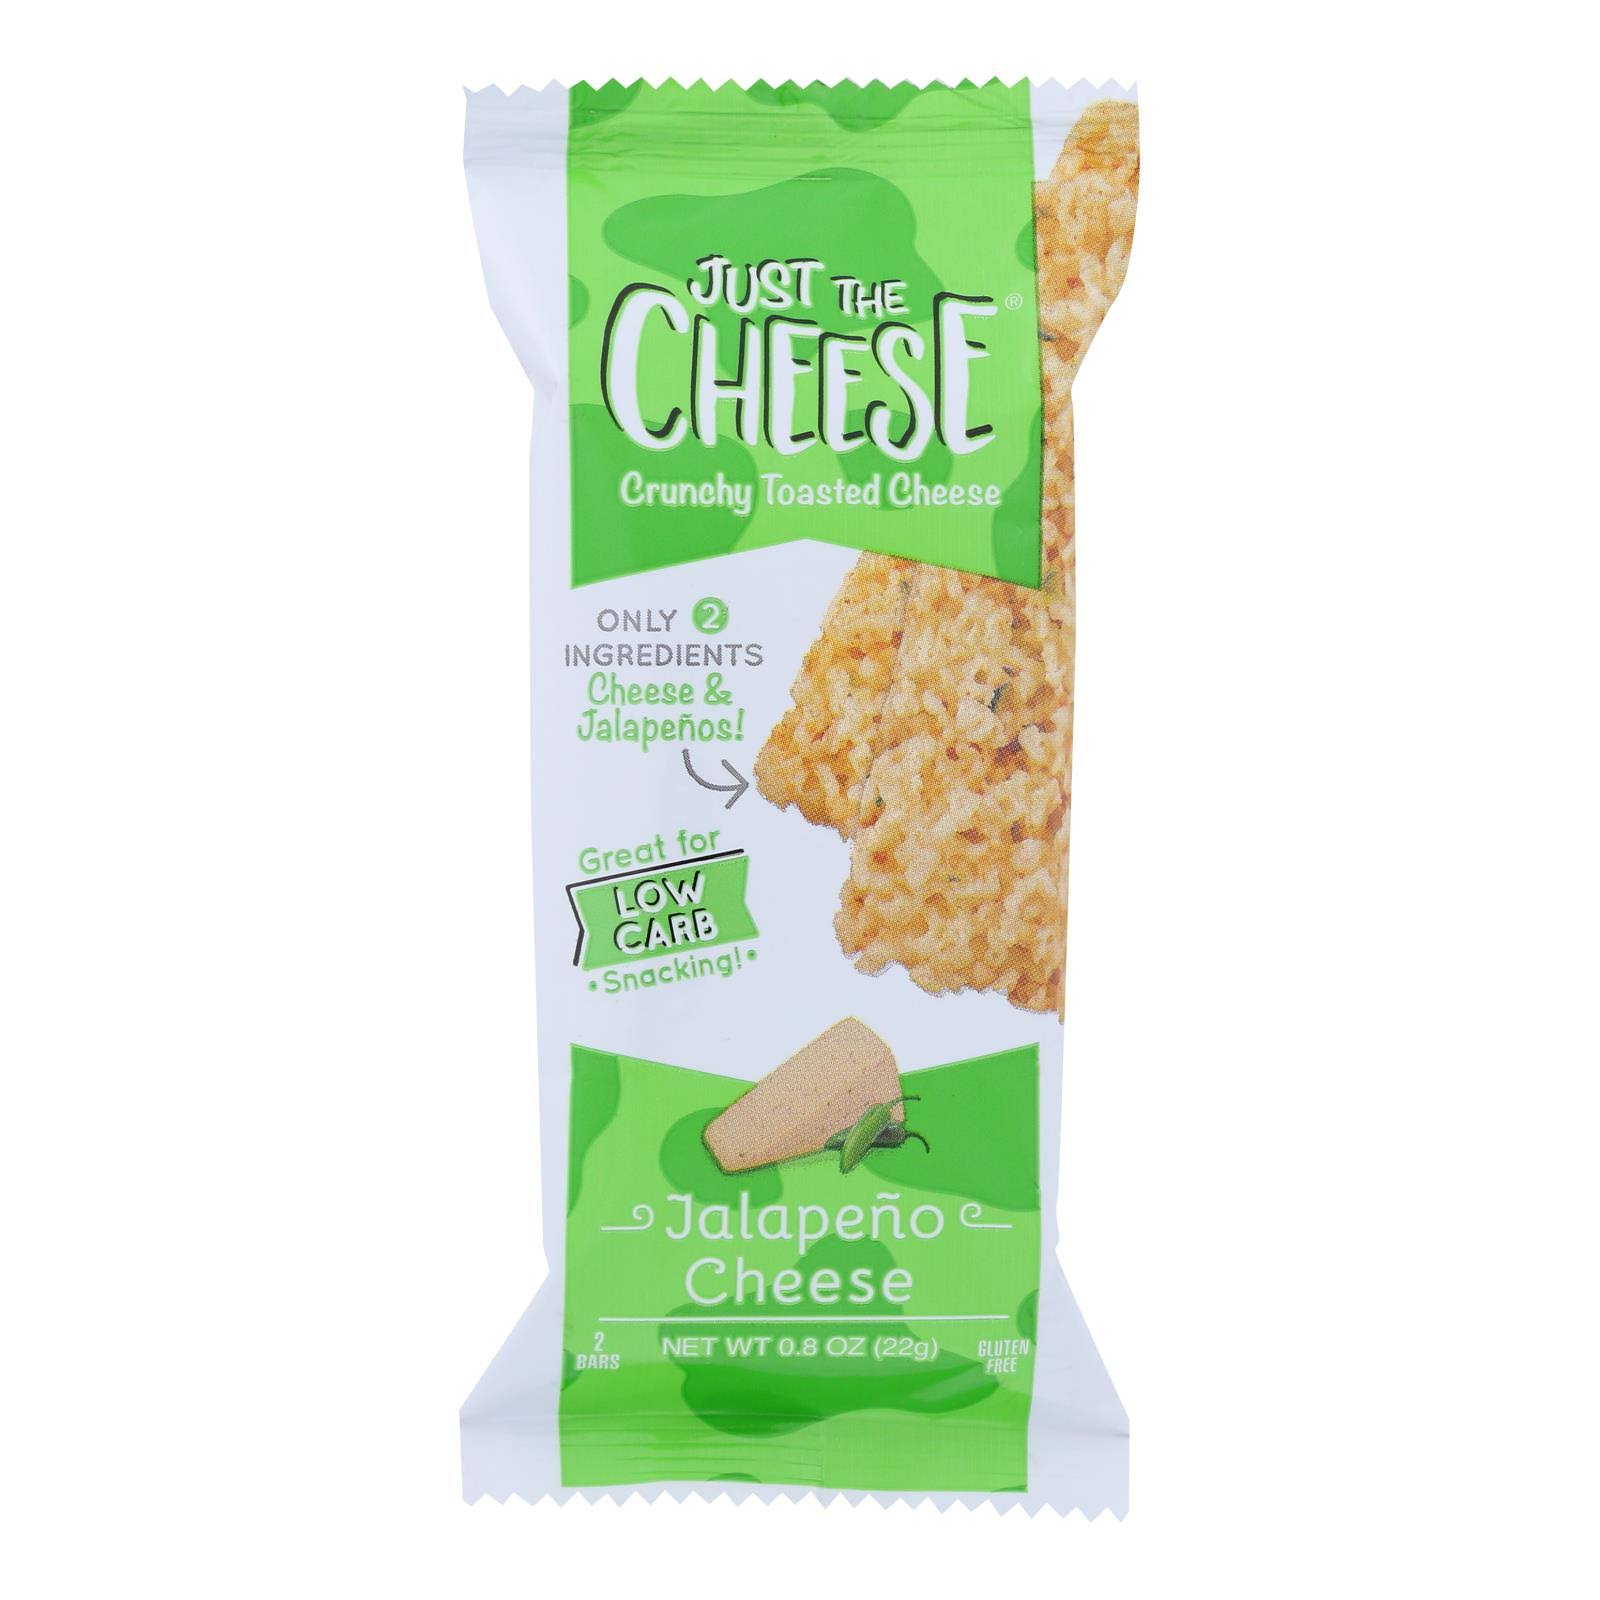 Just The Cheese Cheese, Jalapeno, Toasted, Crunchy - 2 bars, 0.8 oz